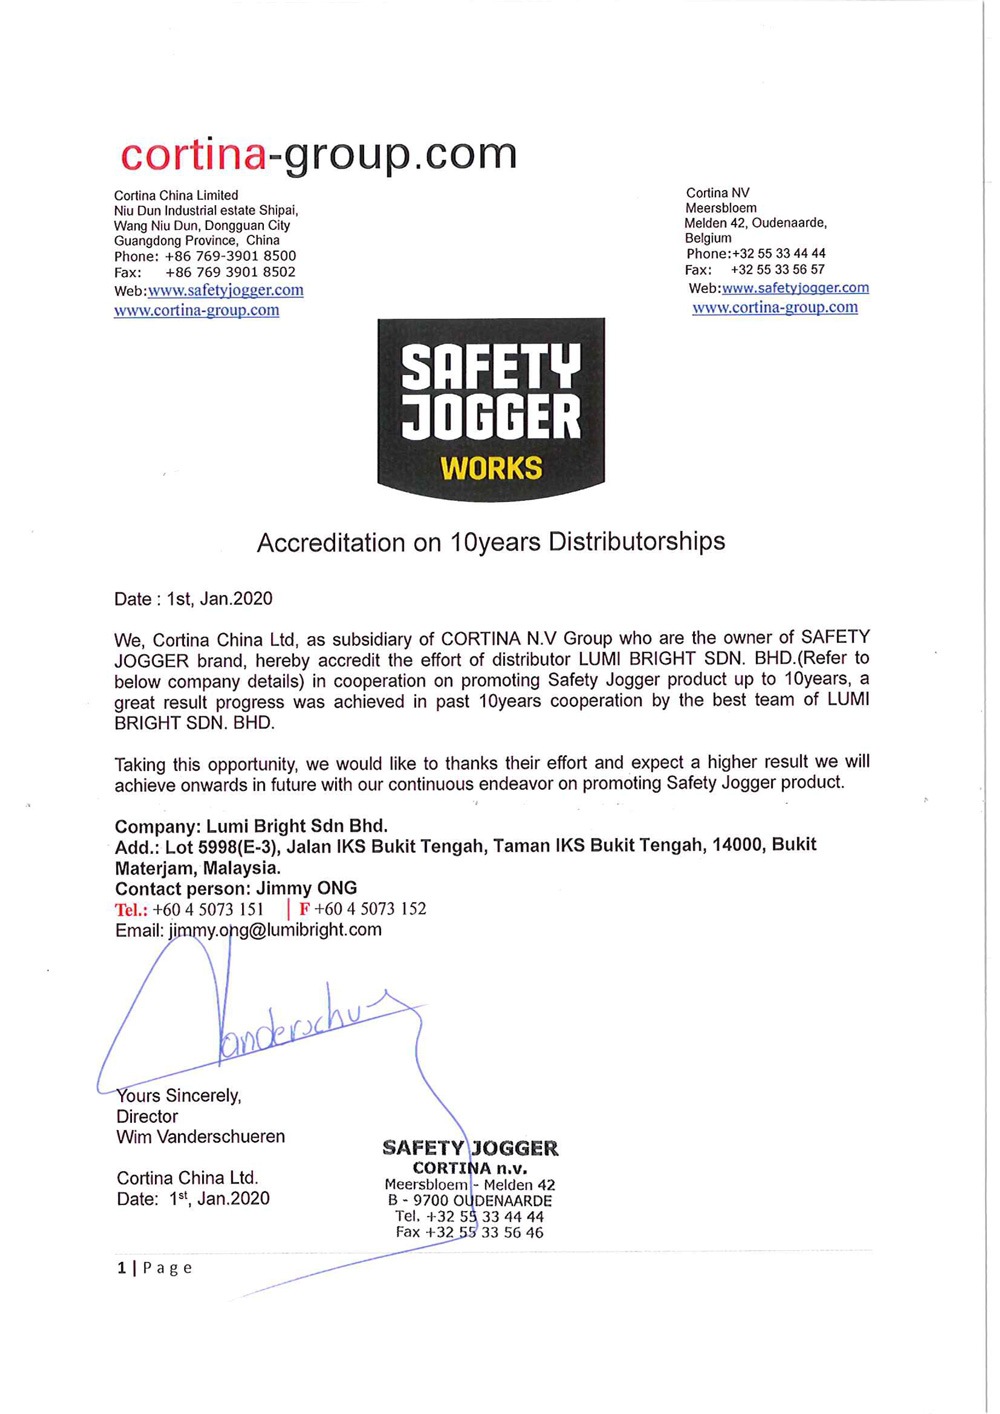 Safety Jogger Accreditation on 10 years Distributorship